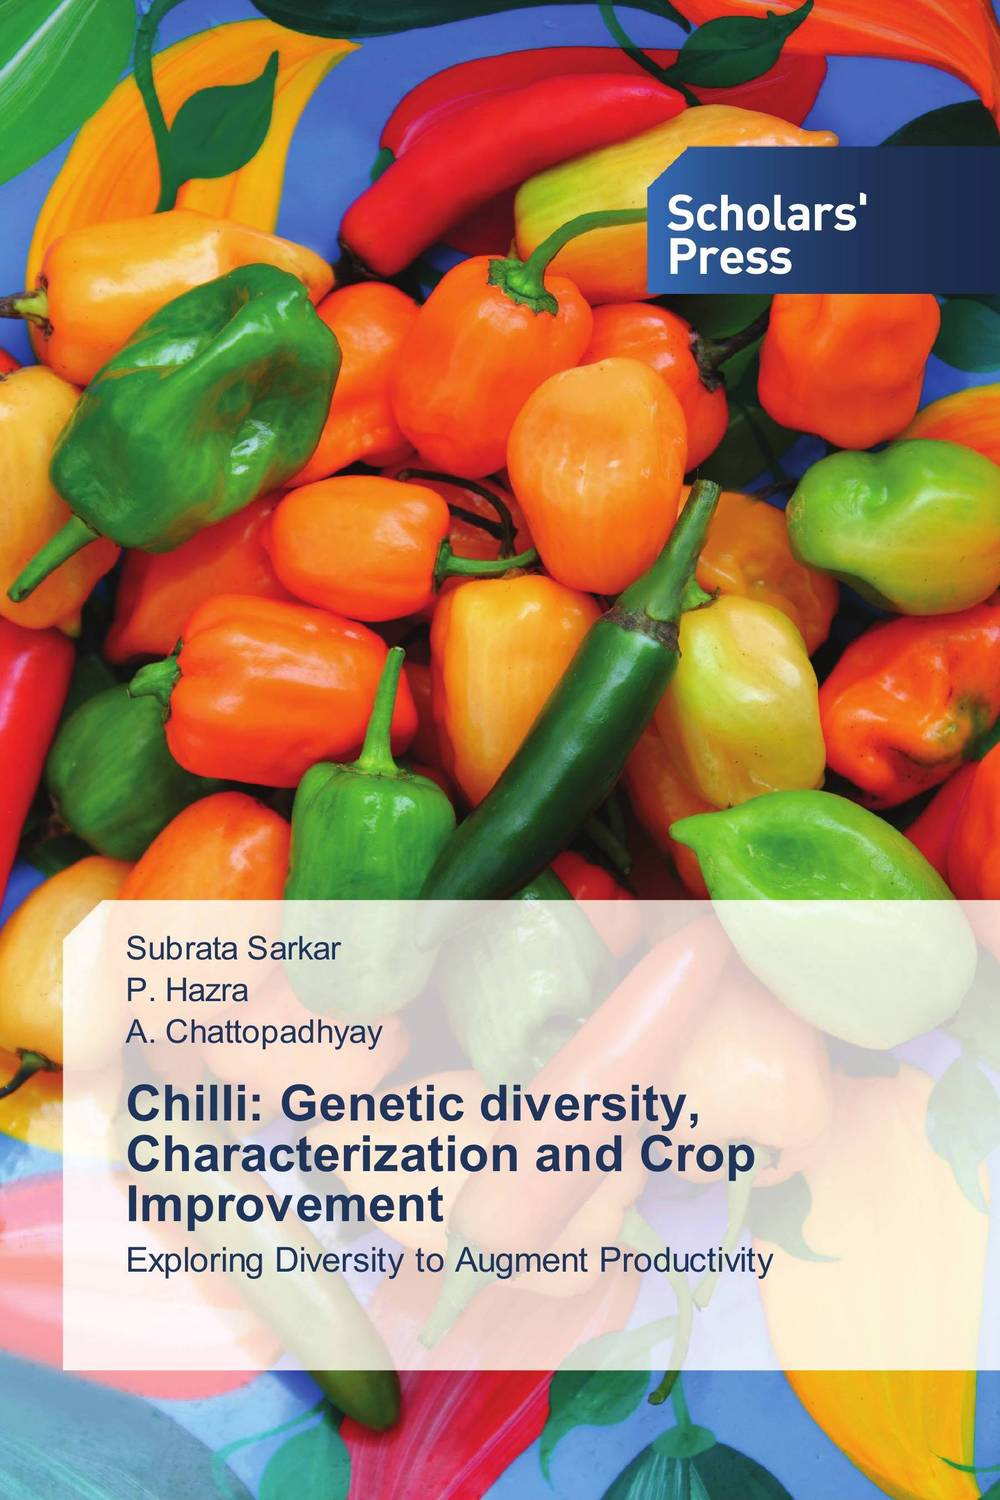 Chilli: Genetic diversity, Characterization and Crop Improvement purnima sareen sundeep kumar and rakesh singh molecular and pathological characterization of slow rusting in wheat